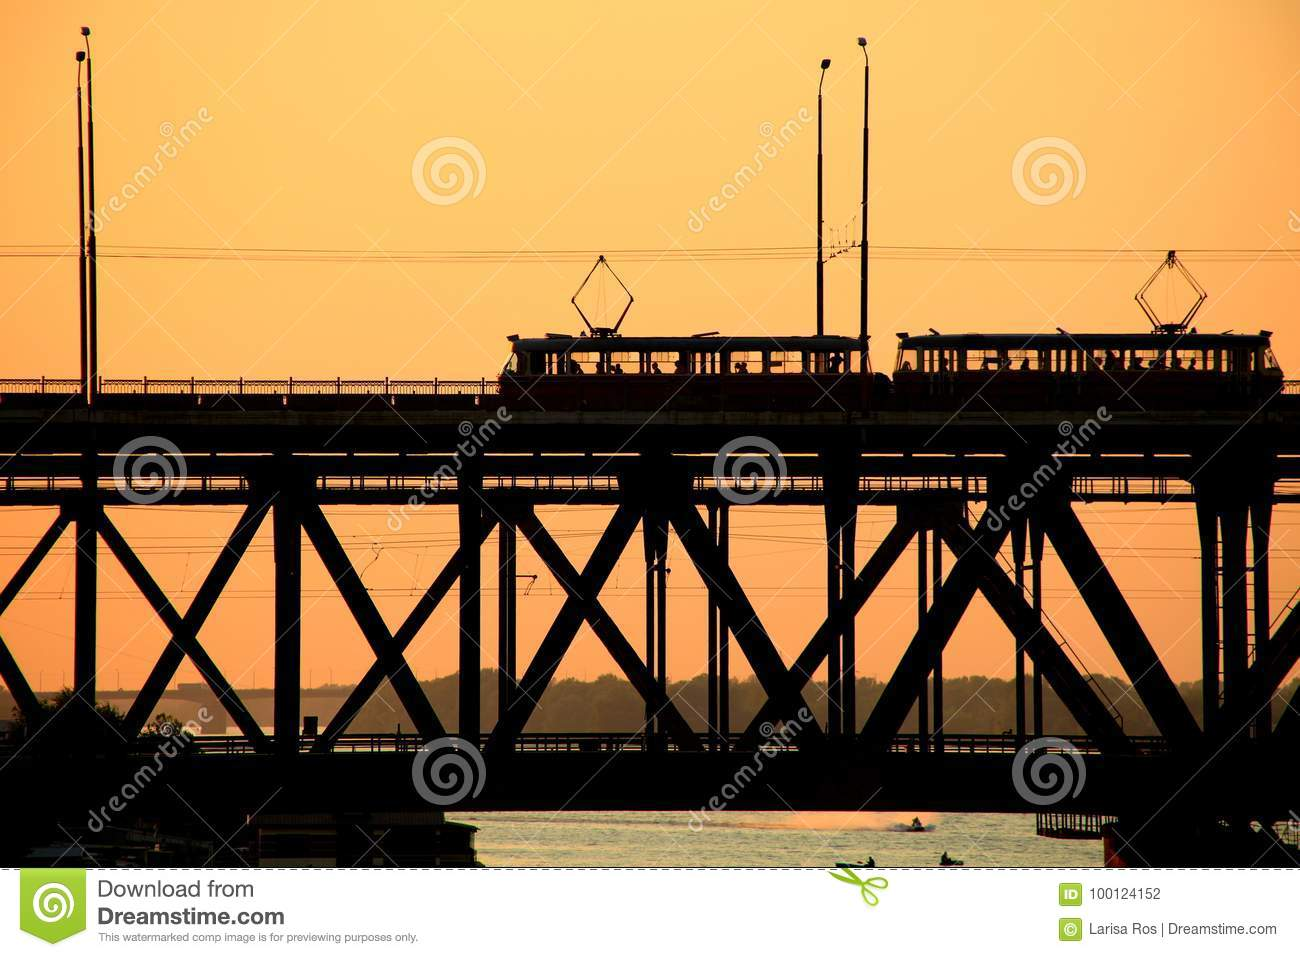 Silhouettes of a two-tiered bridge and 2 trams on a sunset background